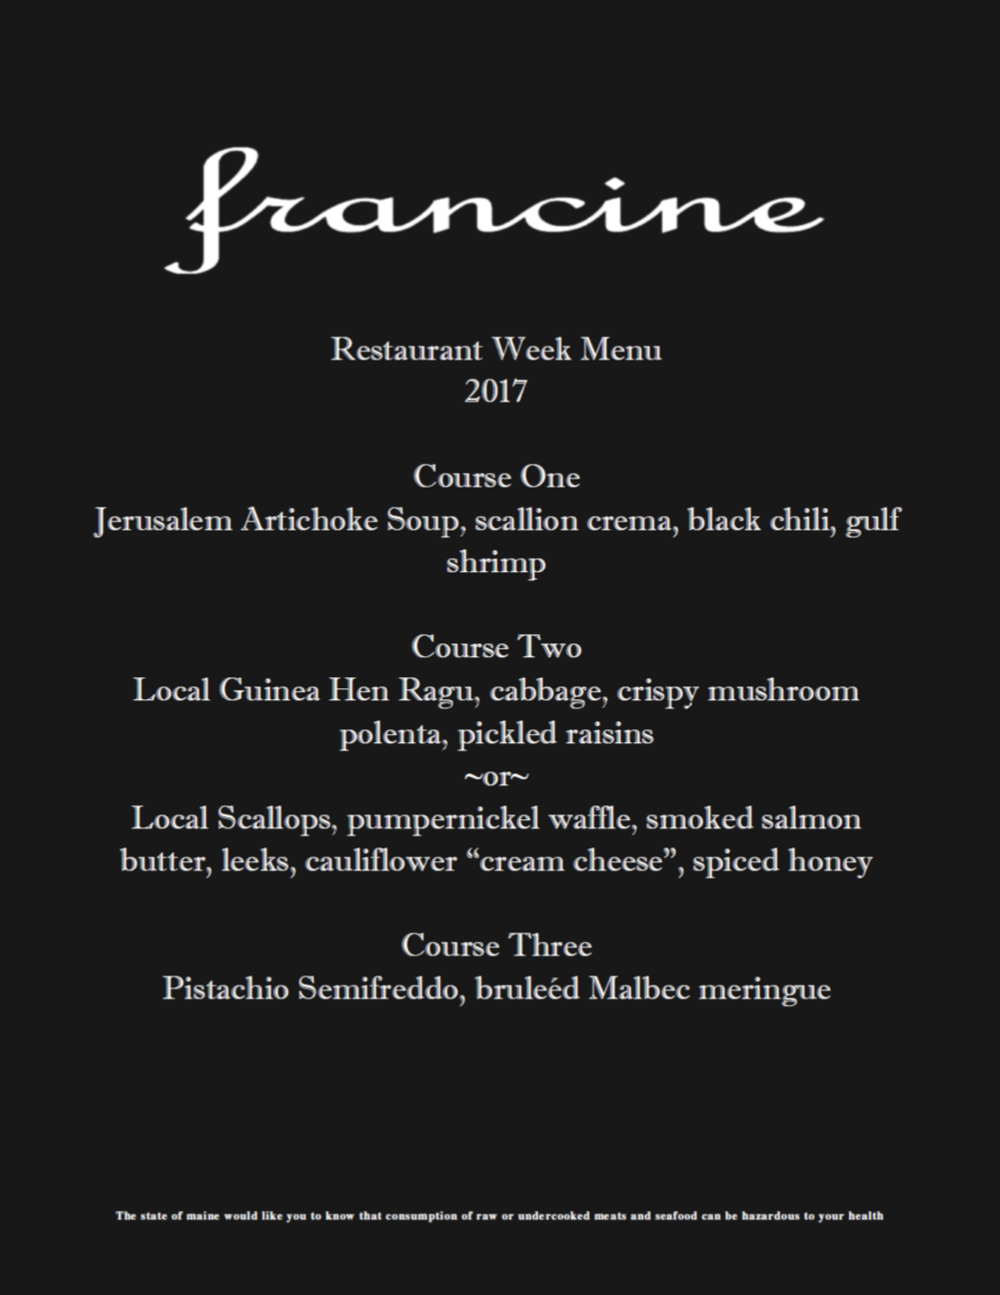 restaurant week 2017 menu black image.png